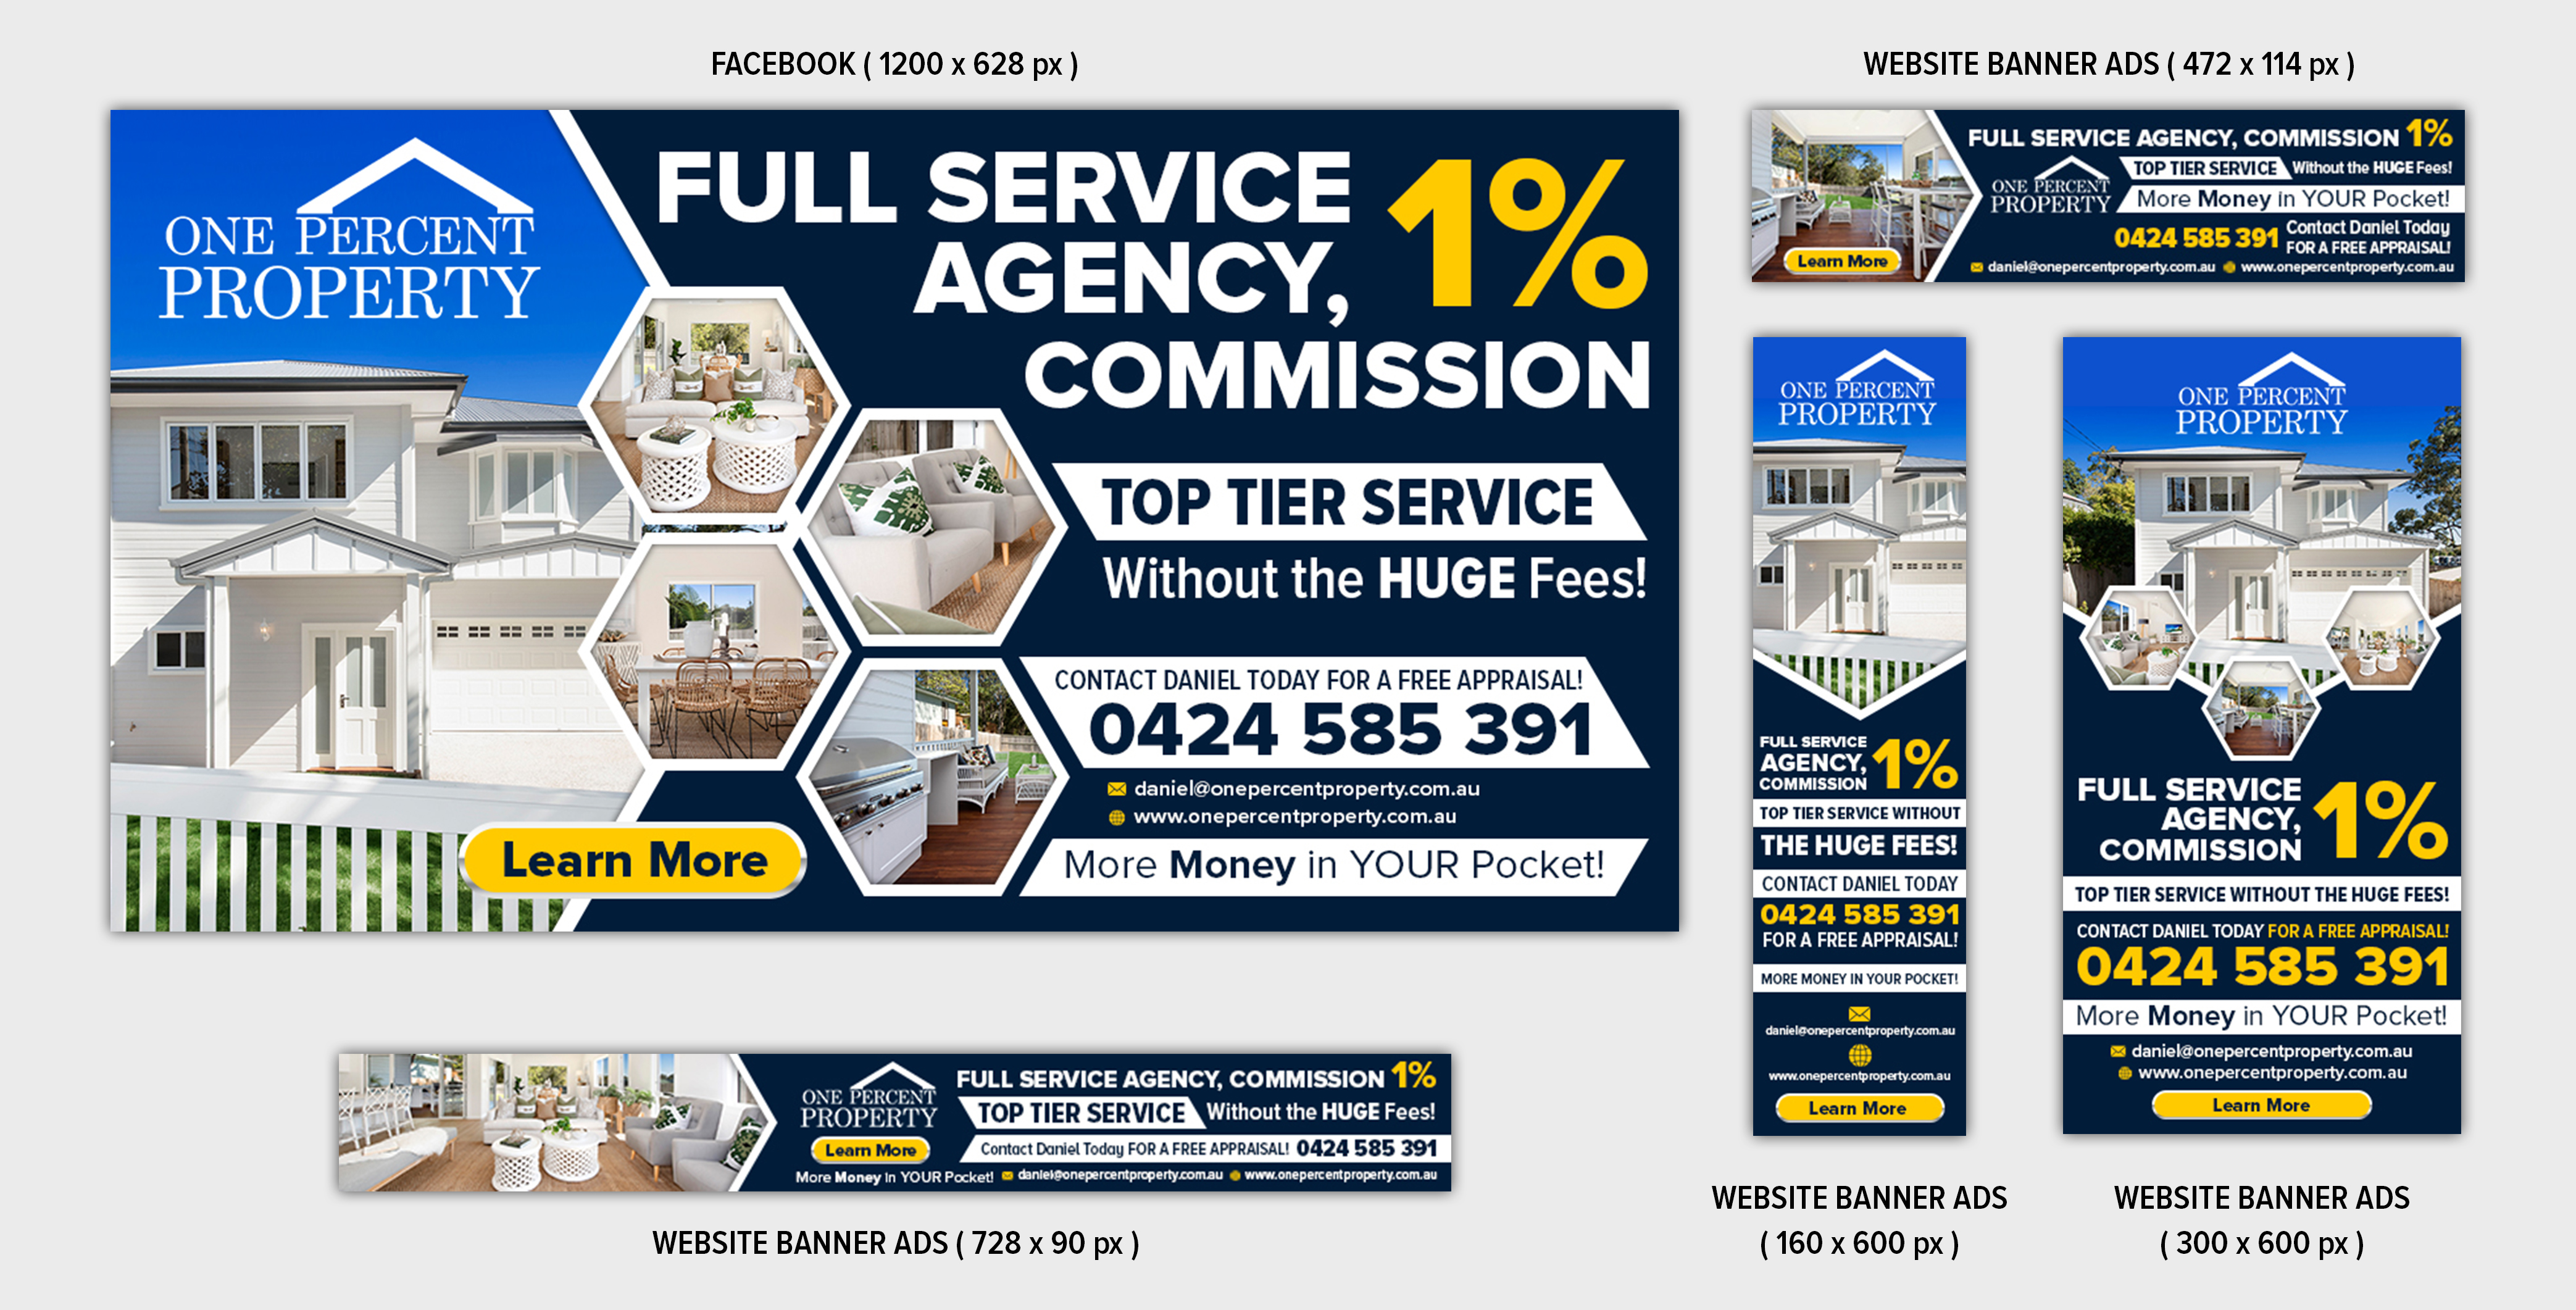 Upmarket Bold Real Estate Agent Banner Ad Design For A Company By Sd Webcreation Design 22516142